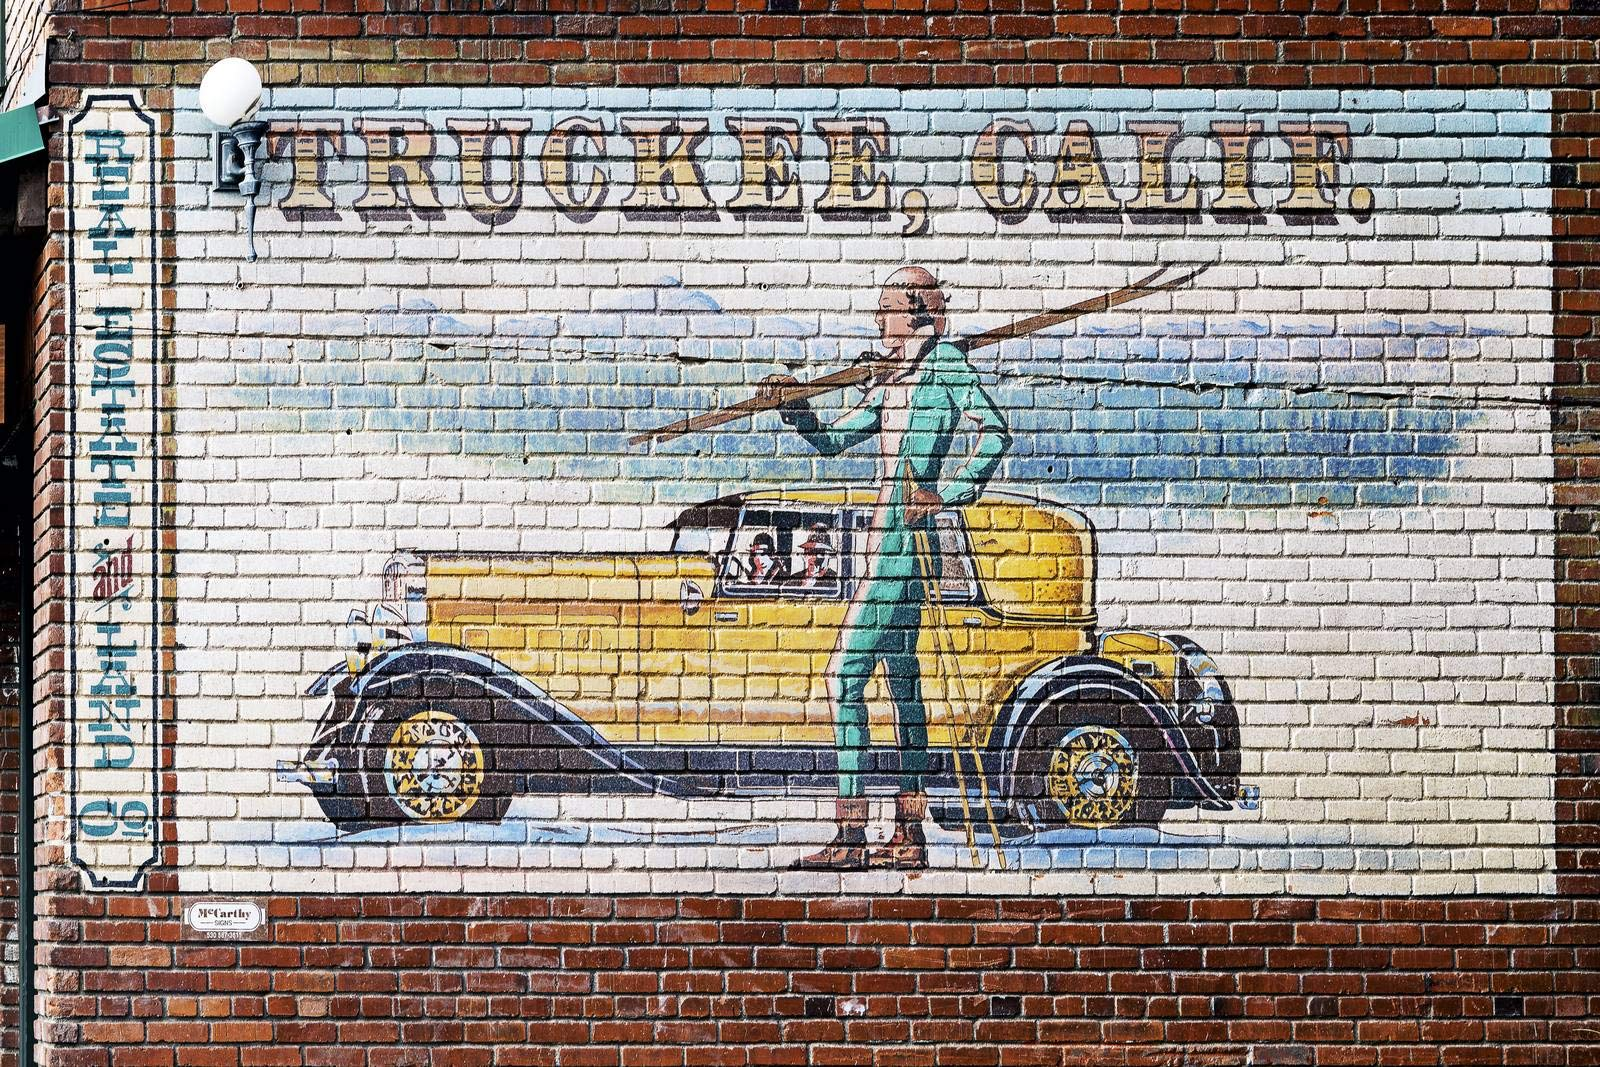 Truckee, CA - Photo - Mural: Real Estate and Land Co. in Truckee, an unincorporated town in Nevada County, California, a few miles north of Lake Tahoe - Carol Highsmith